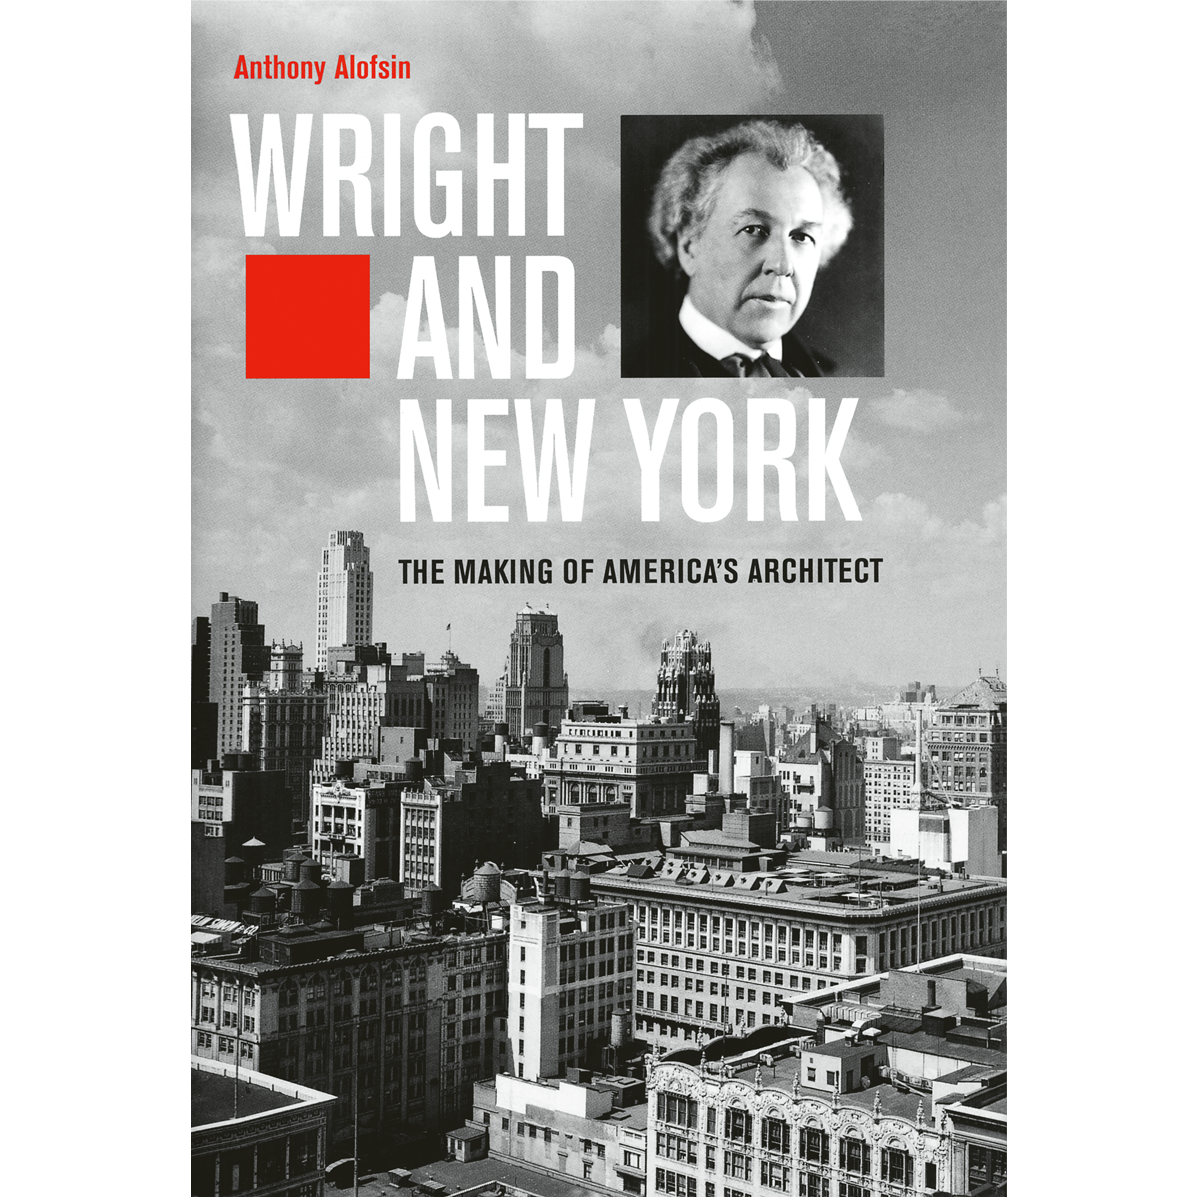 Wright and New York